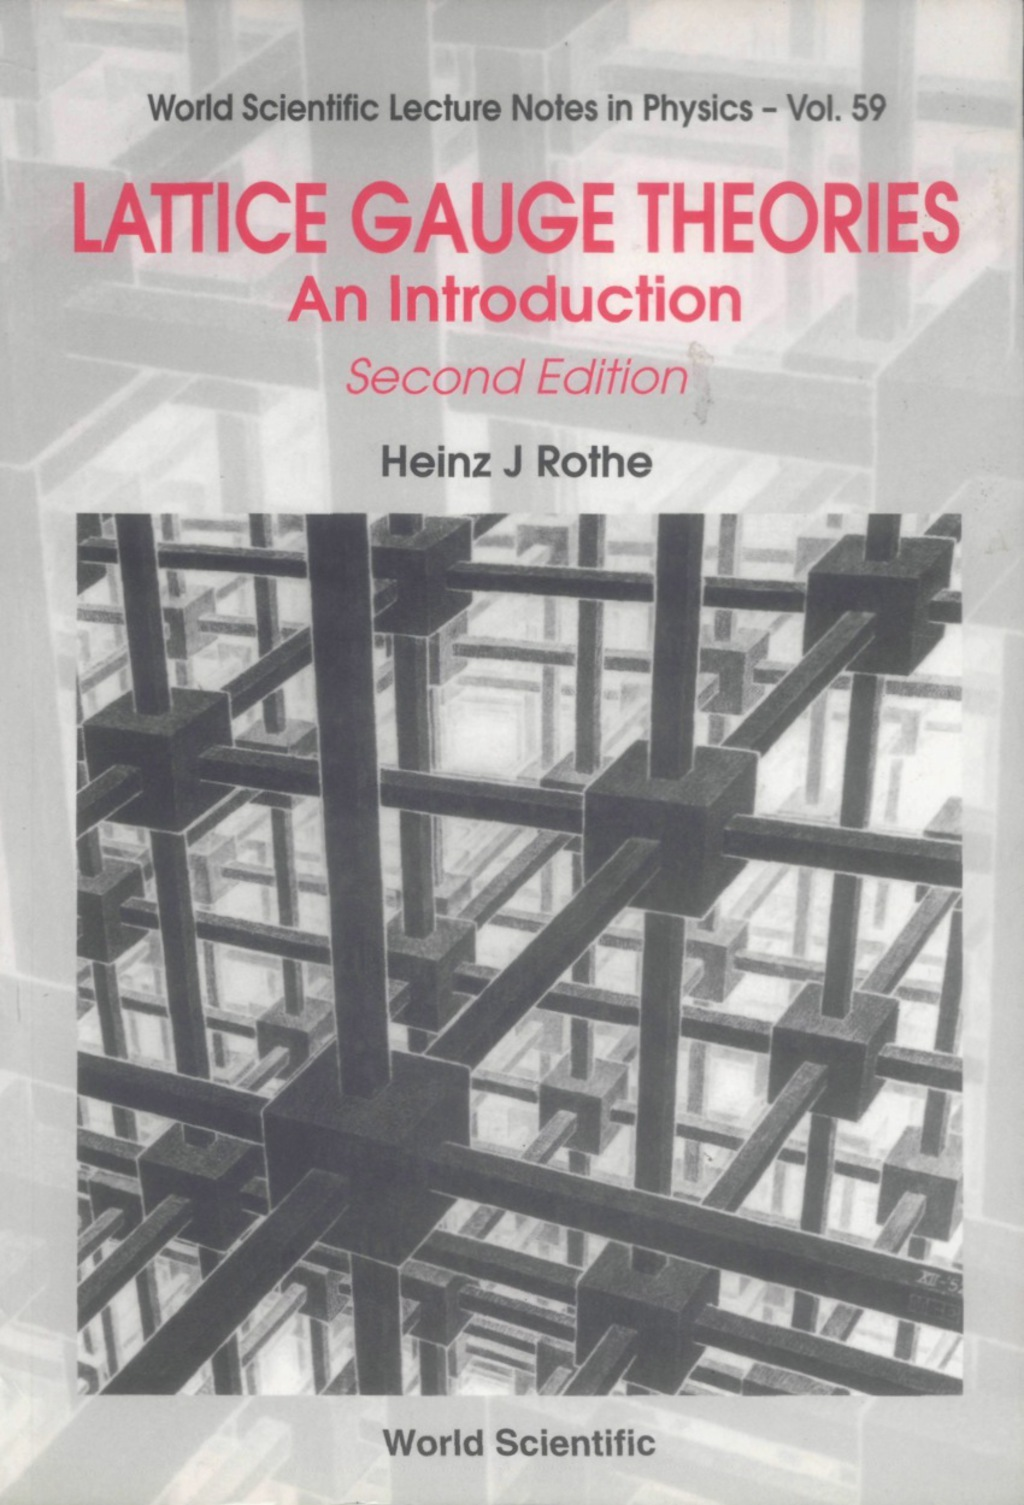 Lattice Gauge Theories (ebook)